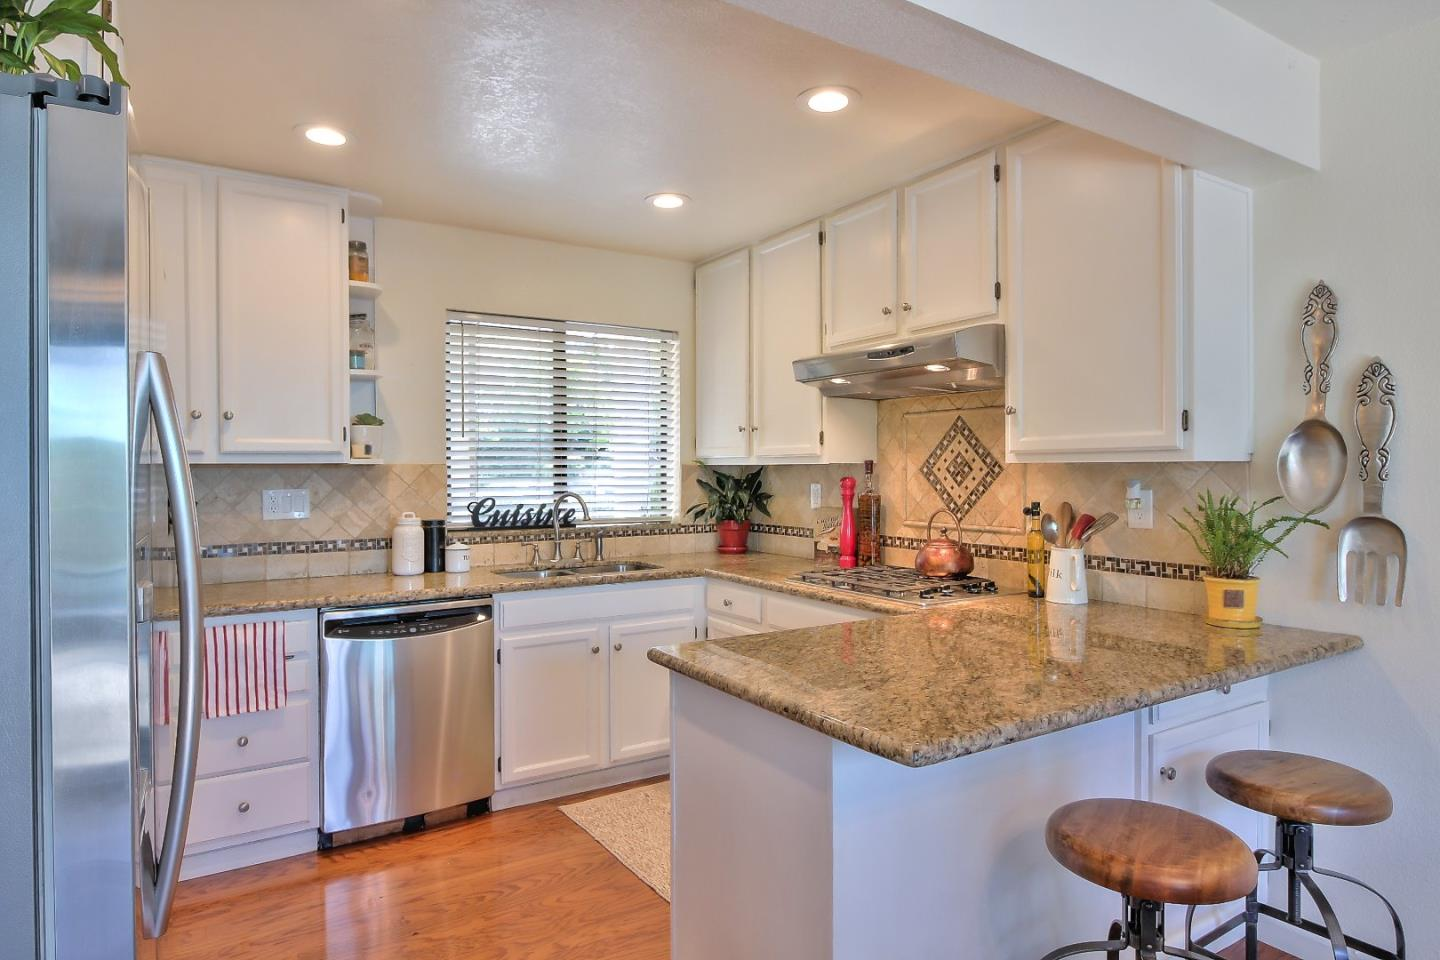 Additional photo for property listing at 1682 Belleville Way  Sunnyvale, カリフォルニア 94087 アメリカ合衆国